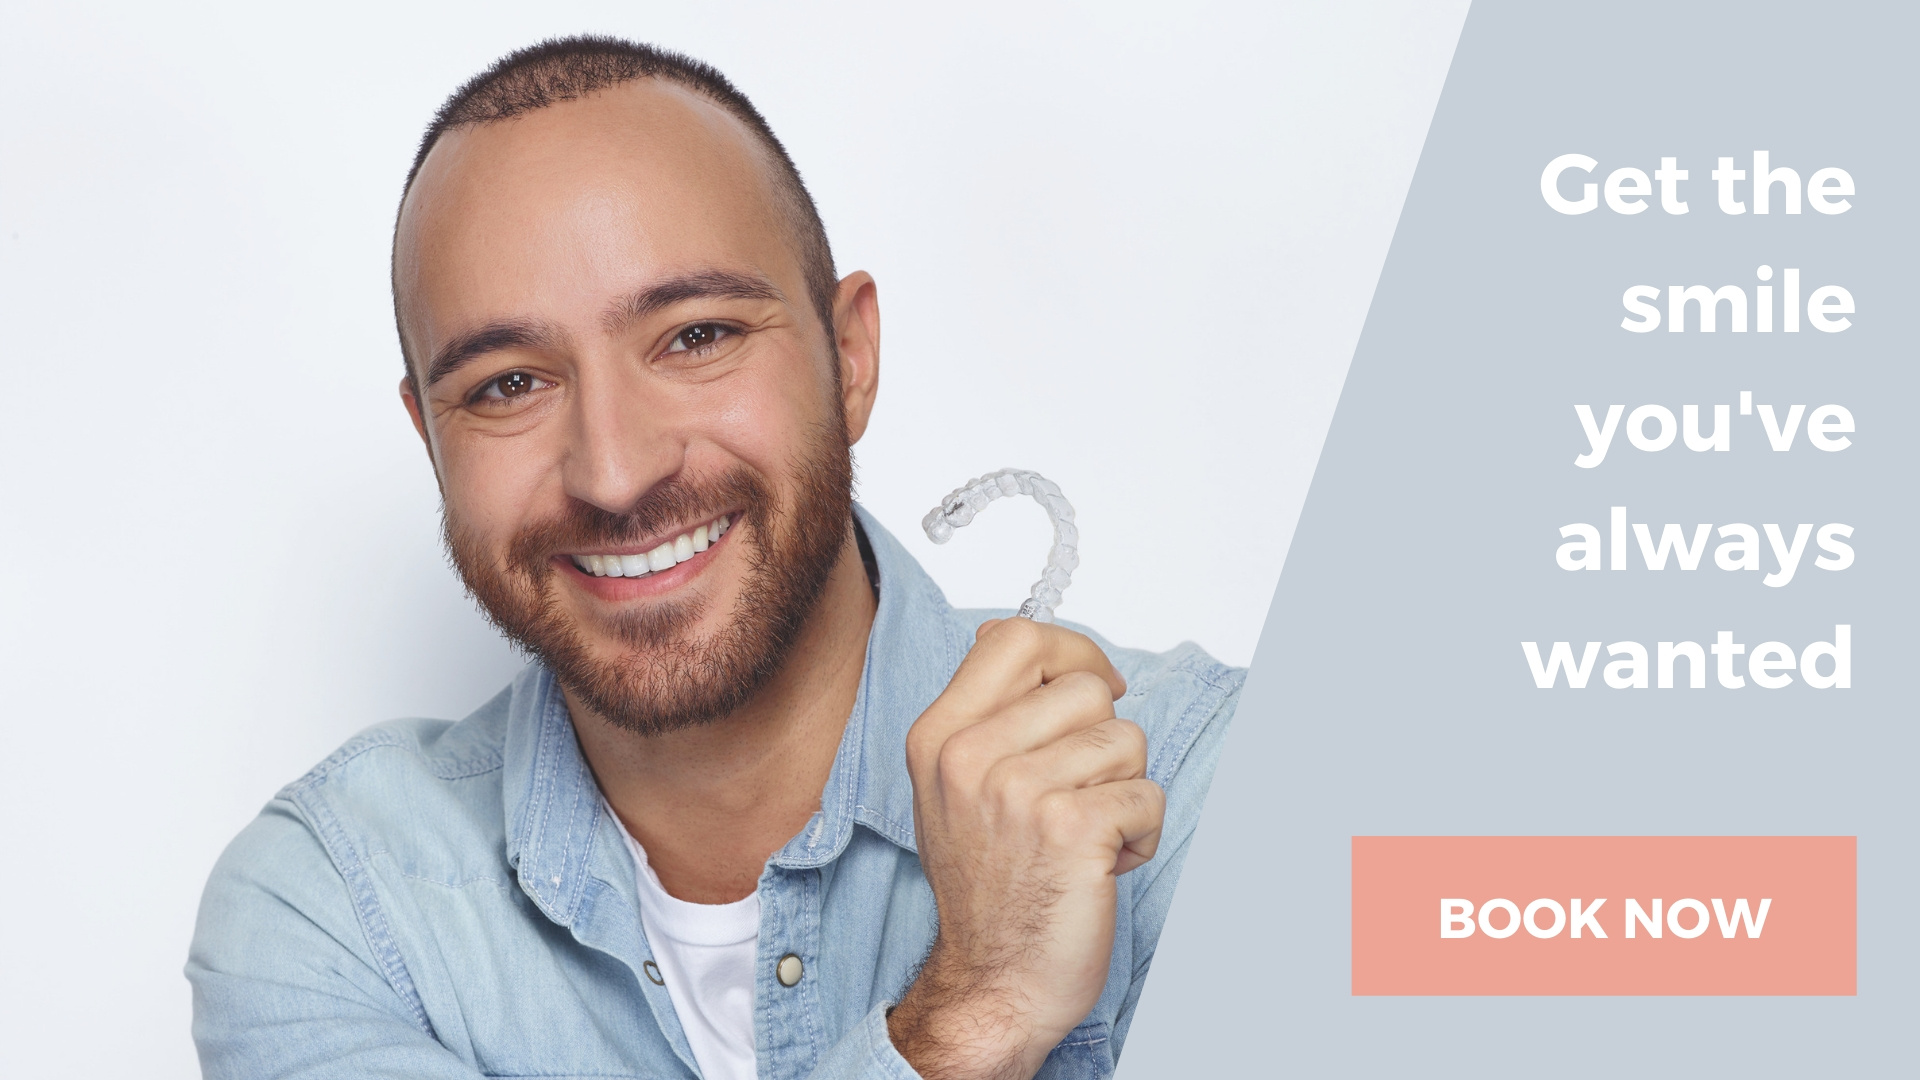 Invisalign aligner being held by a smiling man who is having his crooked teeth aligned